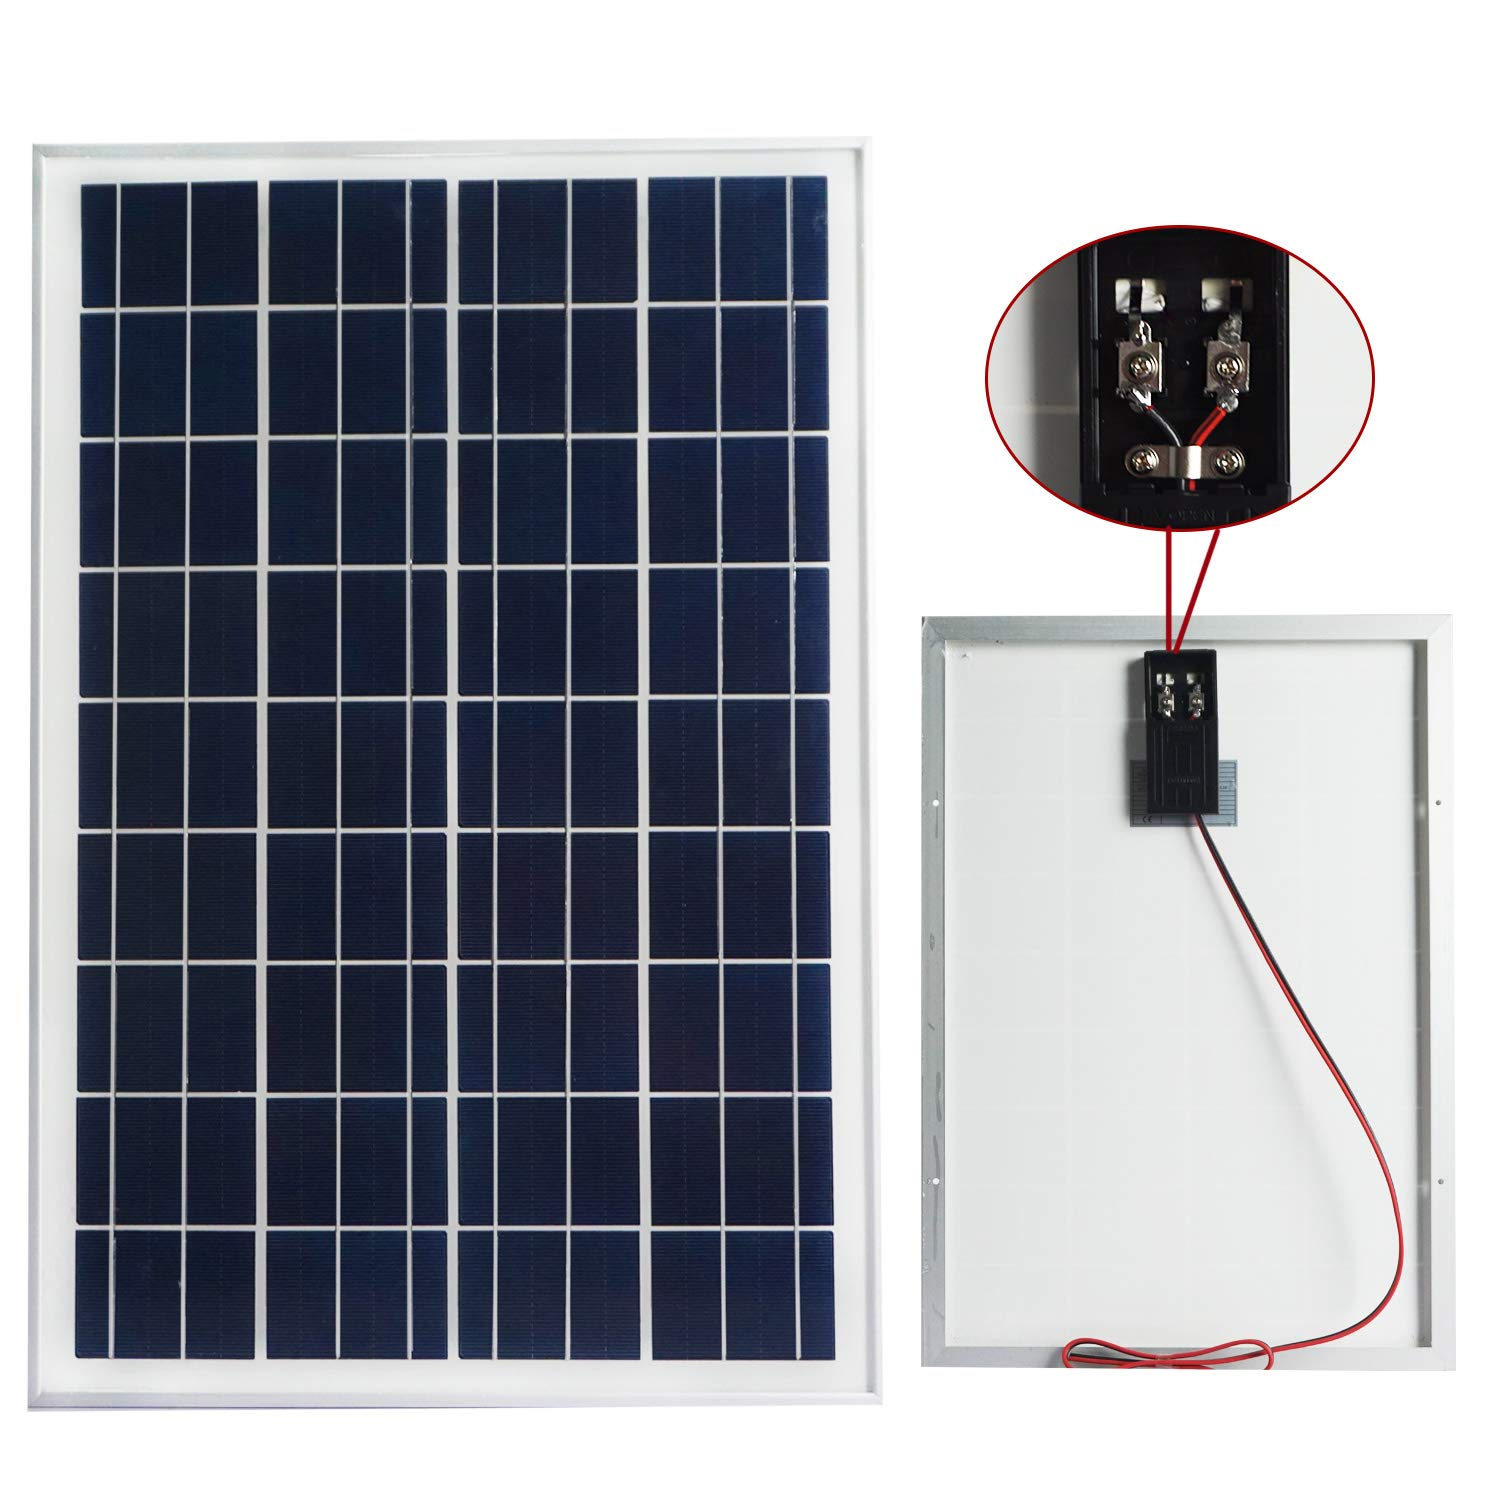 Eco Worthy 20w 12v Ip65 Solar Panel Kit Off Grid It Take To Fully Charge With The Circuit Schematic 3 Polycrystalline Aluminum Battery Clips 3a Controller Garden